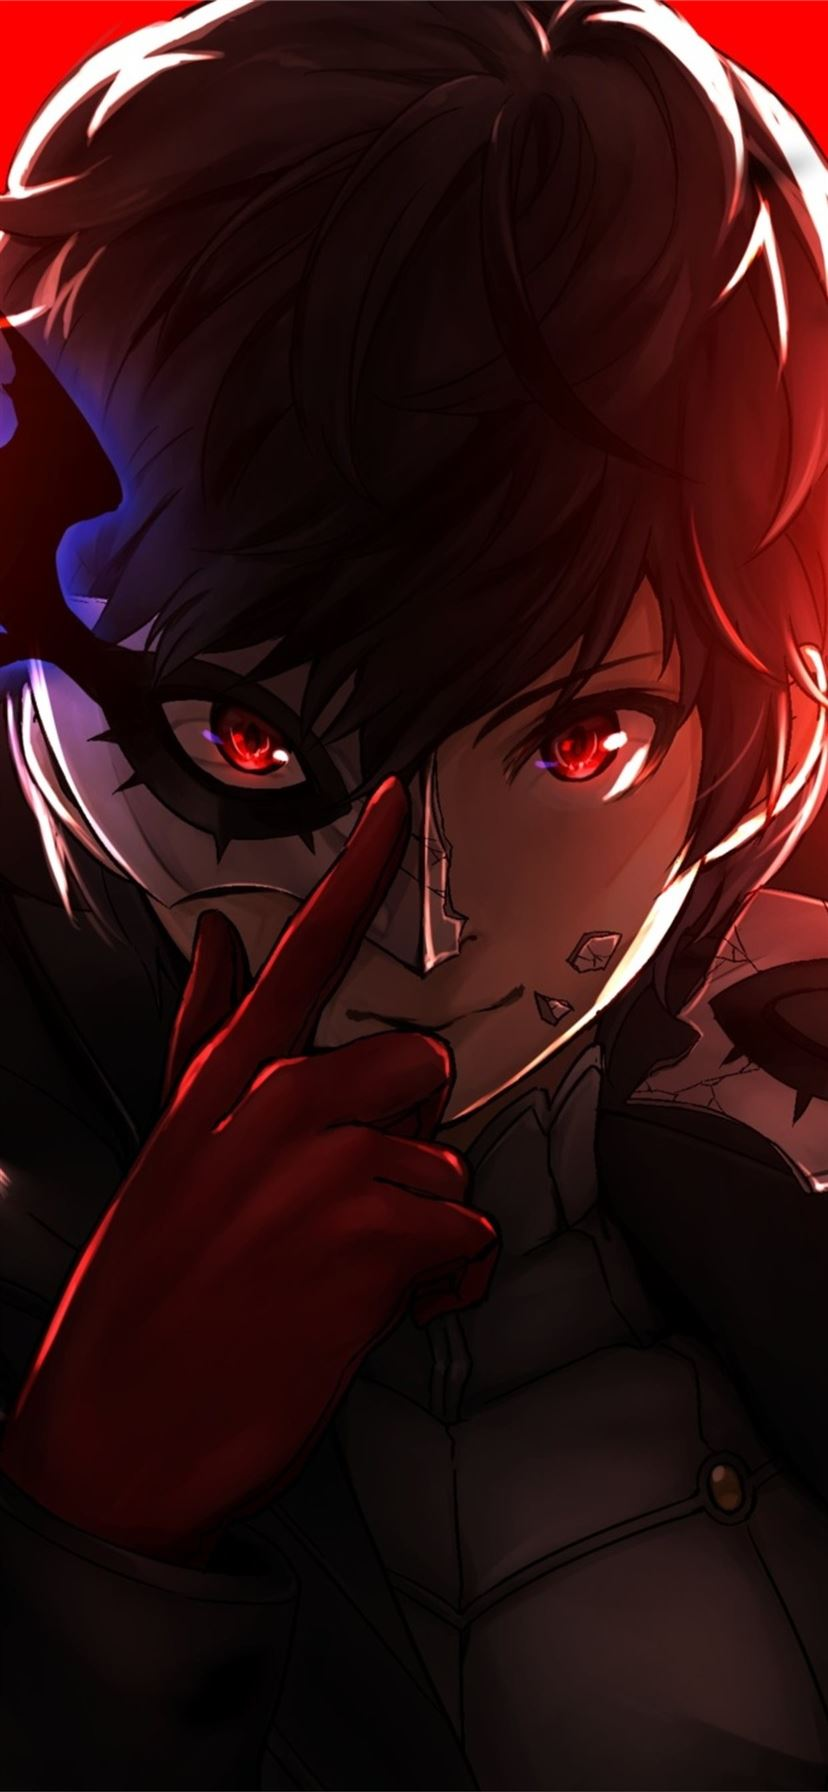 Protagoinst Persona 5 4k Iphone 11 Wallpapers Free Download